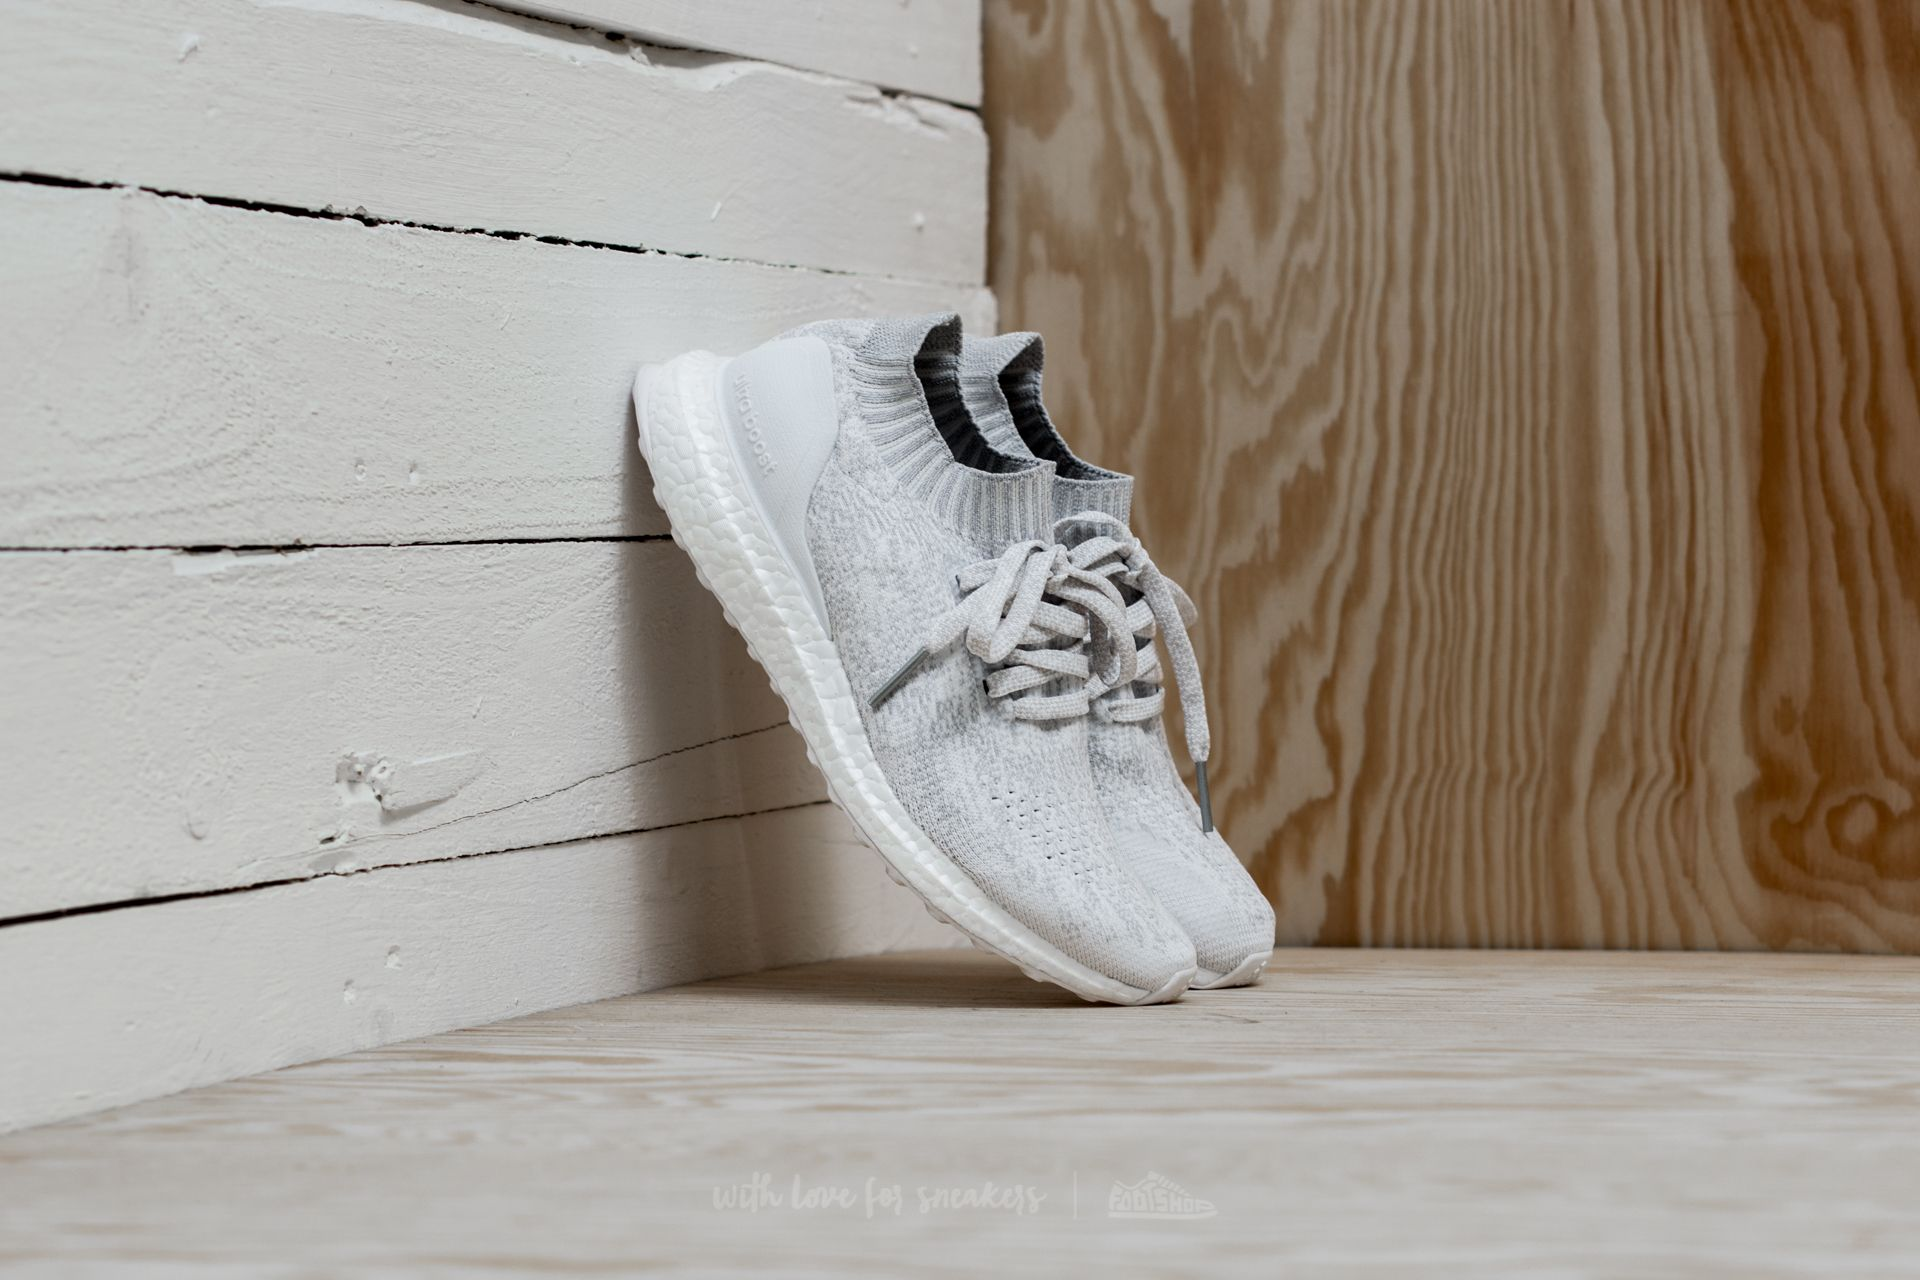 41a1acf64 adidas UltraBoost Uncaged J Ftw White  Ftw White  Crystal White ...